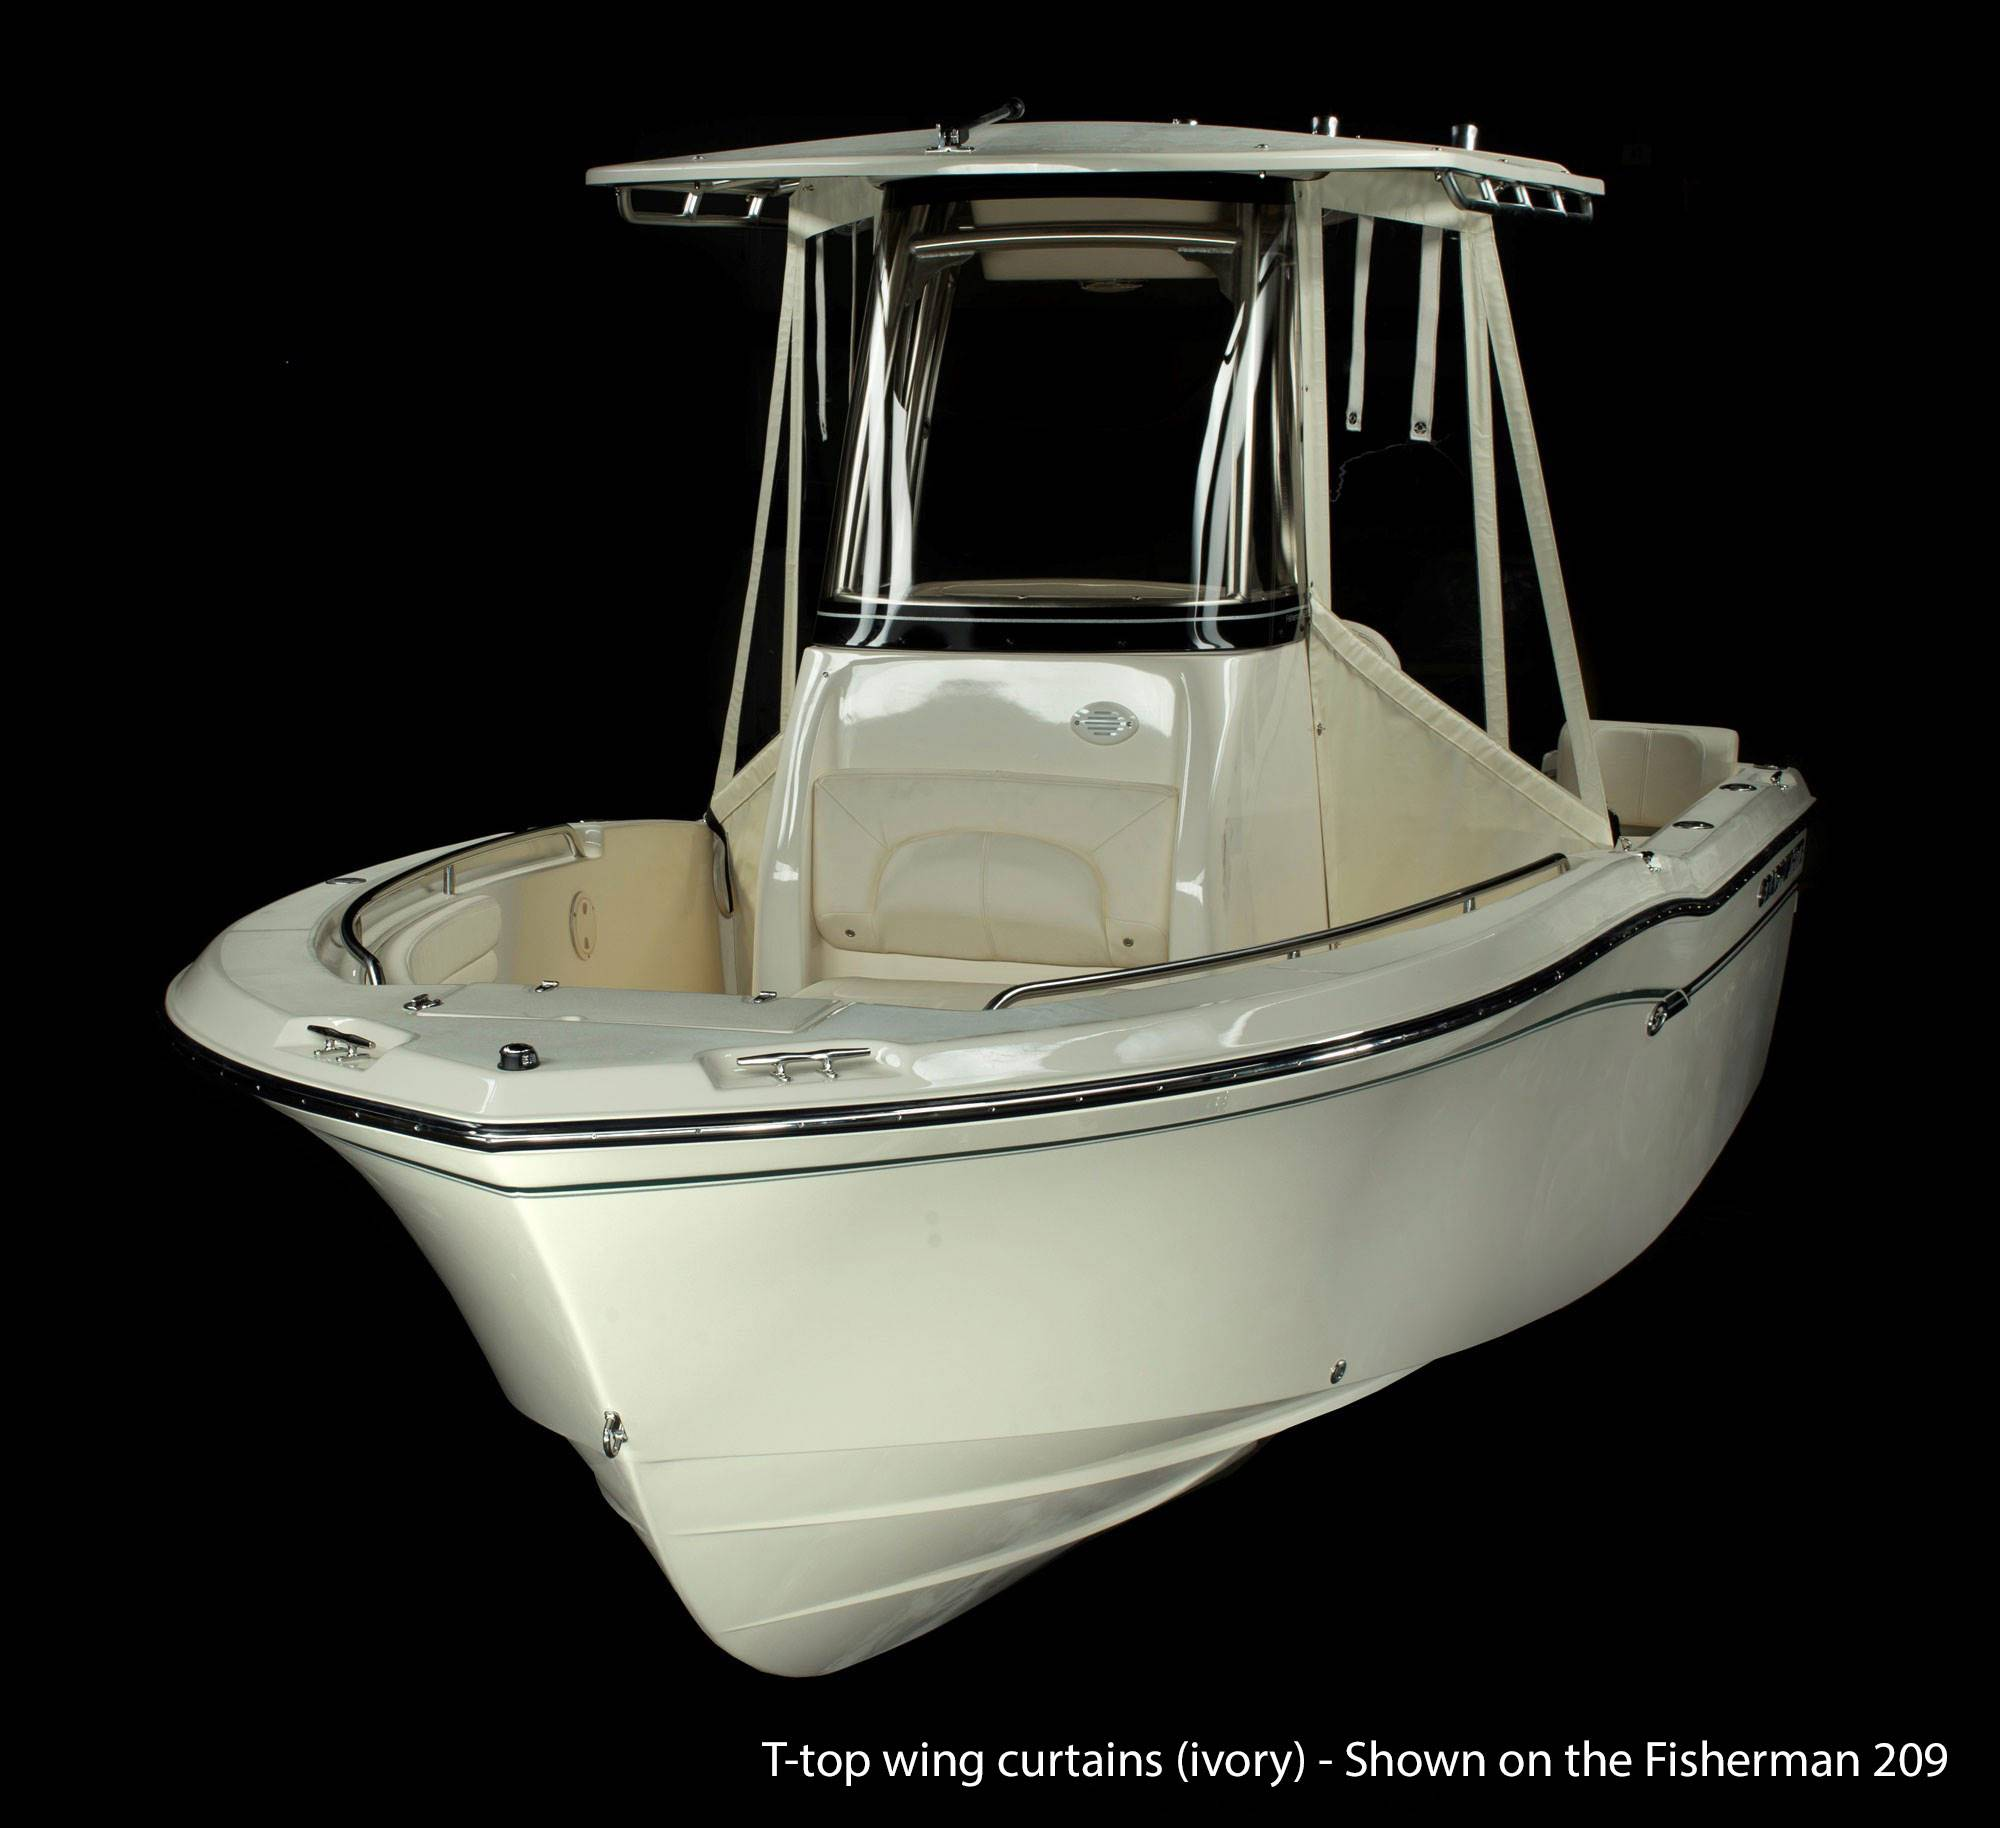 Optional T-top wing curtains protect you from wind and rain on this Fisherman 216.